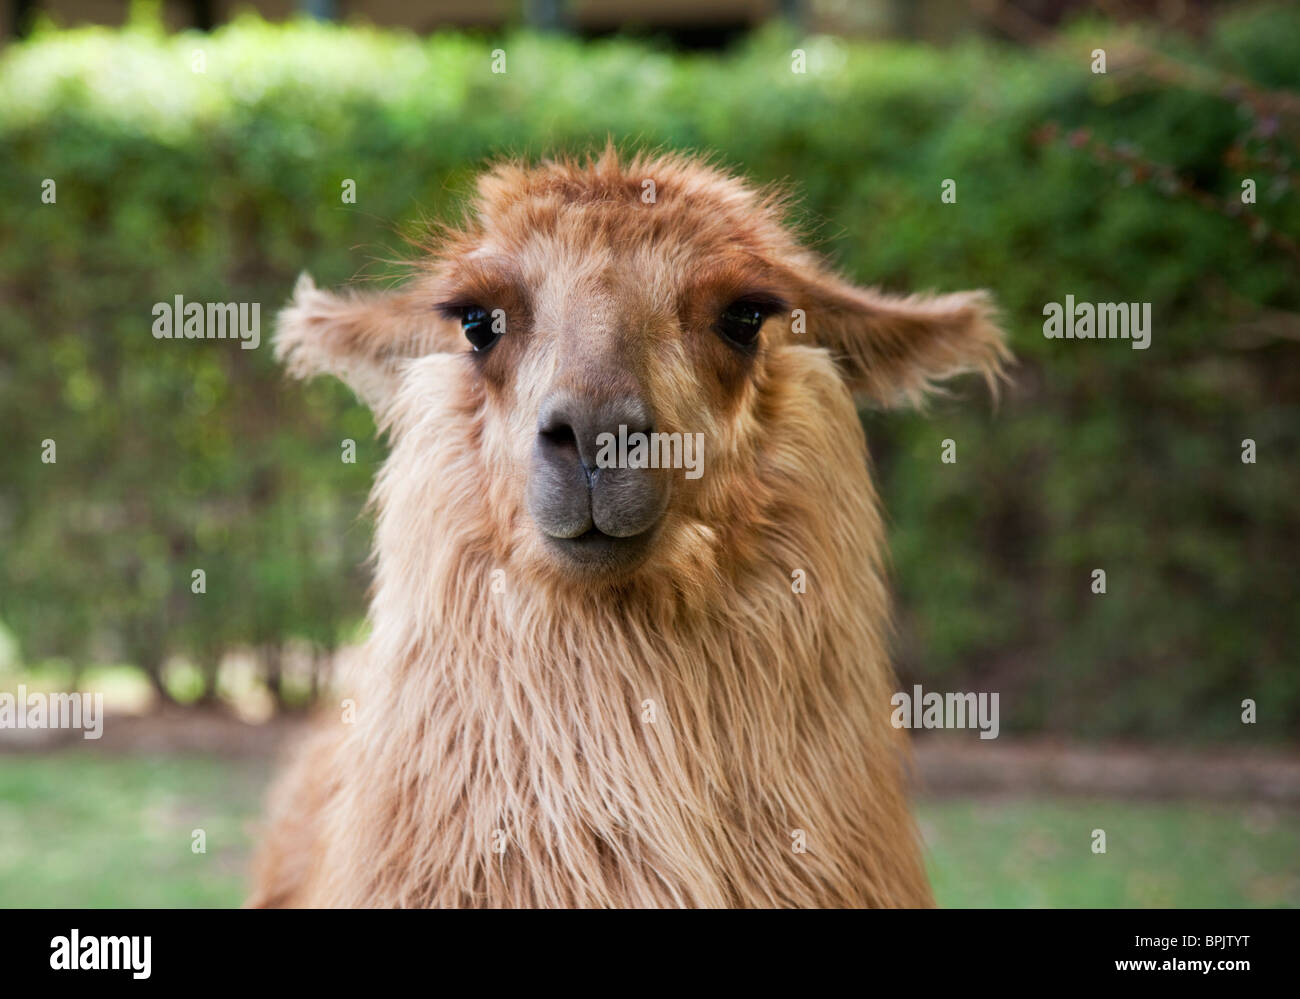 South America, Argentina, Mendoza. Portrait of a llama at Club Tapiz. - Stock Image